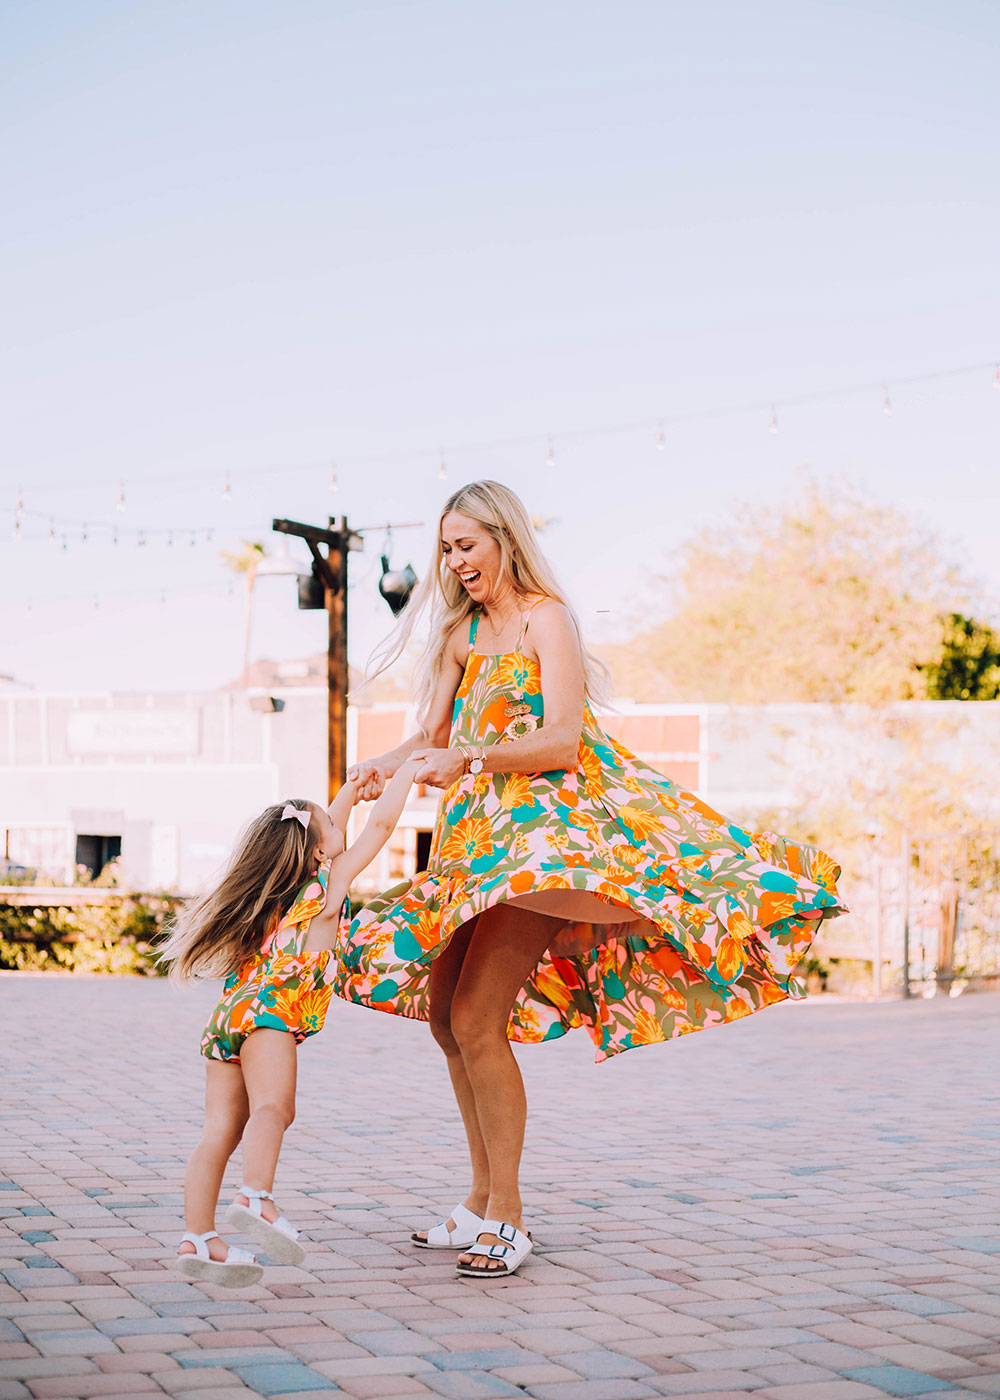 twirling with my sweet girl in our matching crew + lu outfits | thelovedesignedlife.com